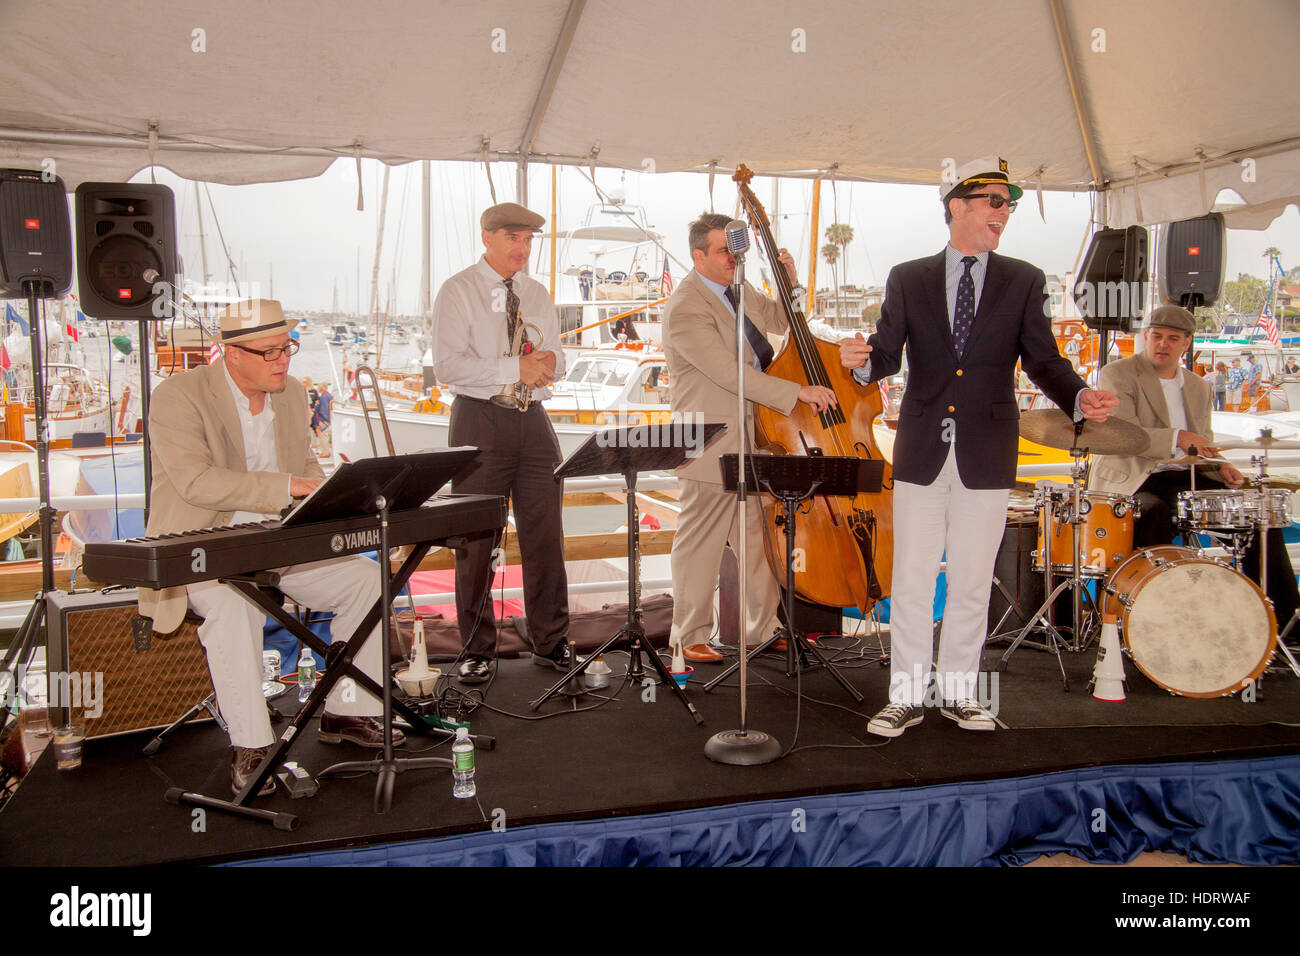 Its singer decked out in a yachting cap, a band entertains visitors to an exhibition of vintage wooden boats at - Stock Image